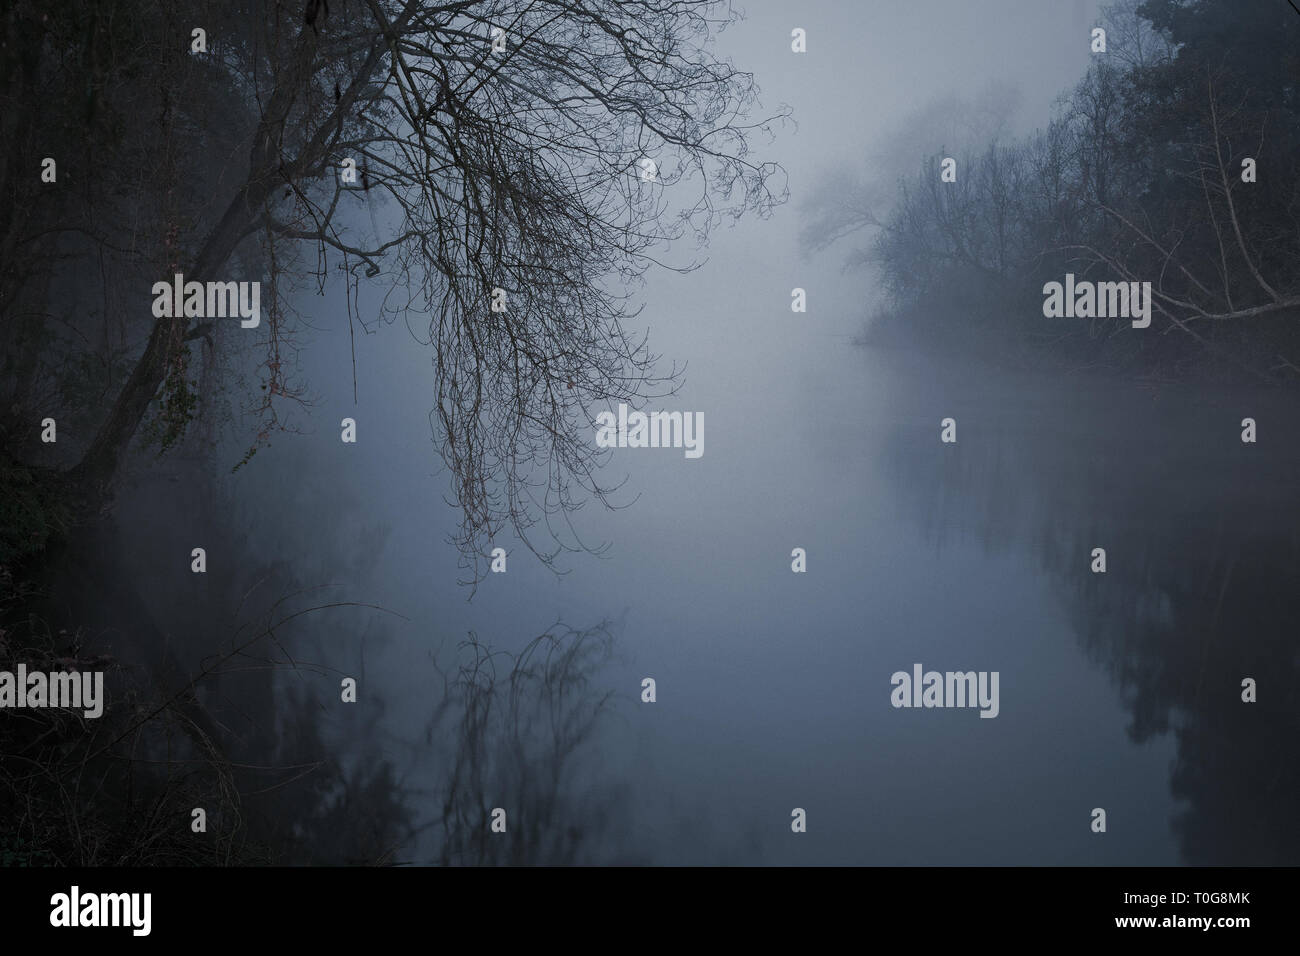 Mysterious and frightening river in a foggy night - Stock Image